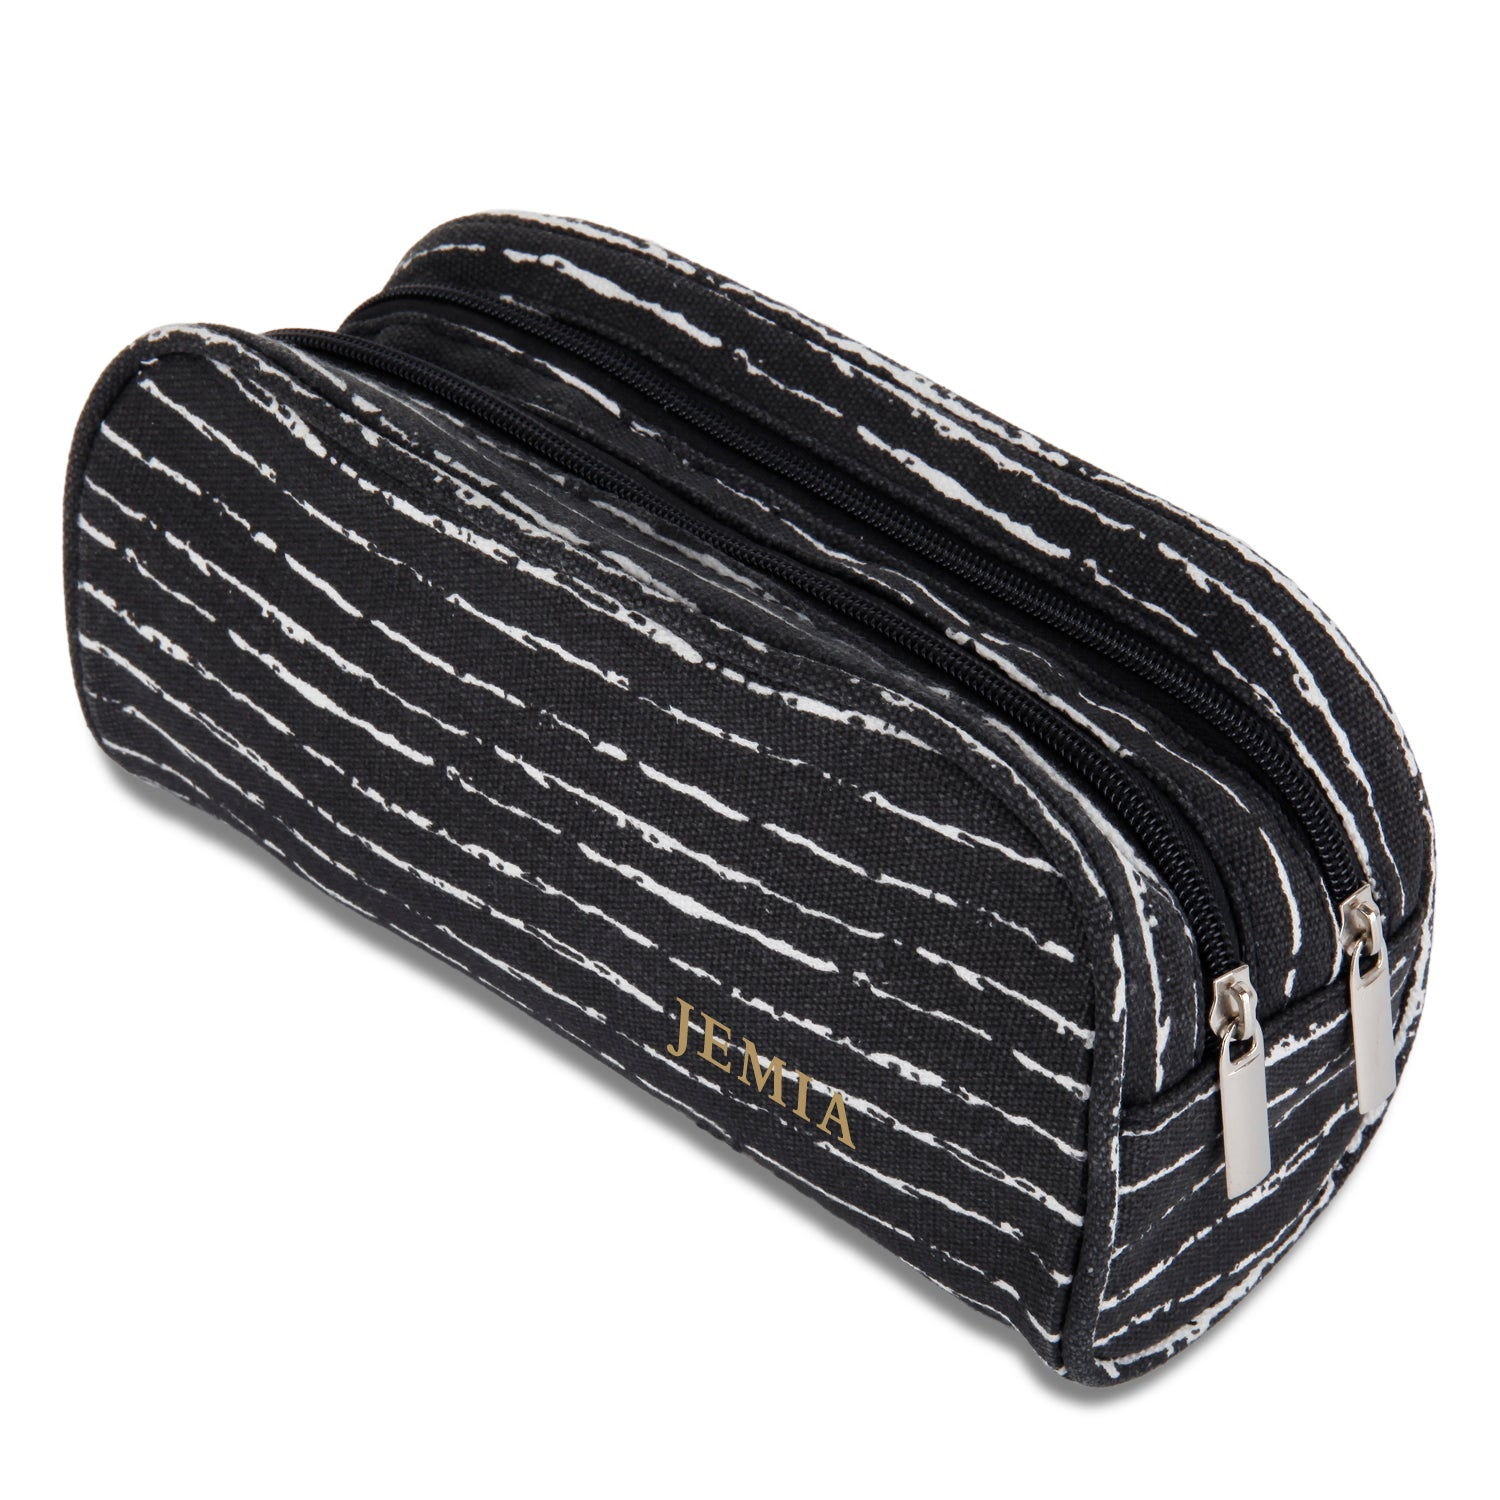 Dual Compartments Pencil Case with Mesh Pockets (Black with Random White, Canvas)